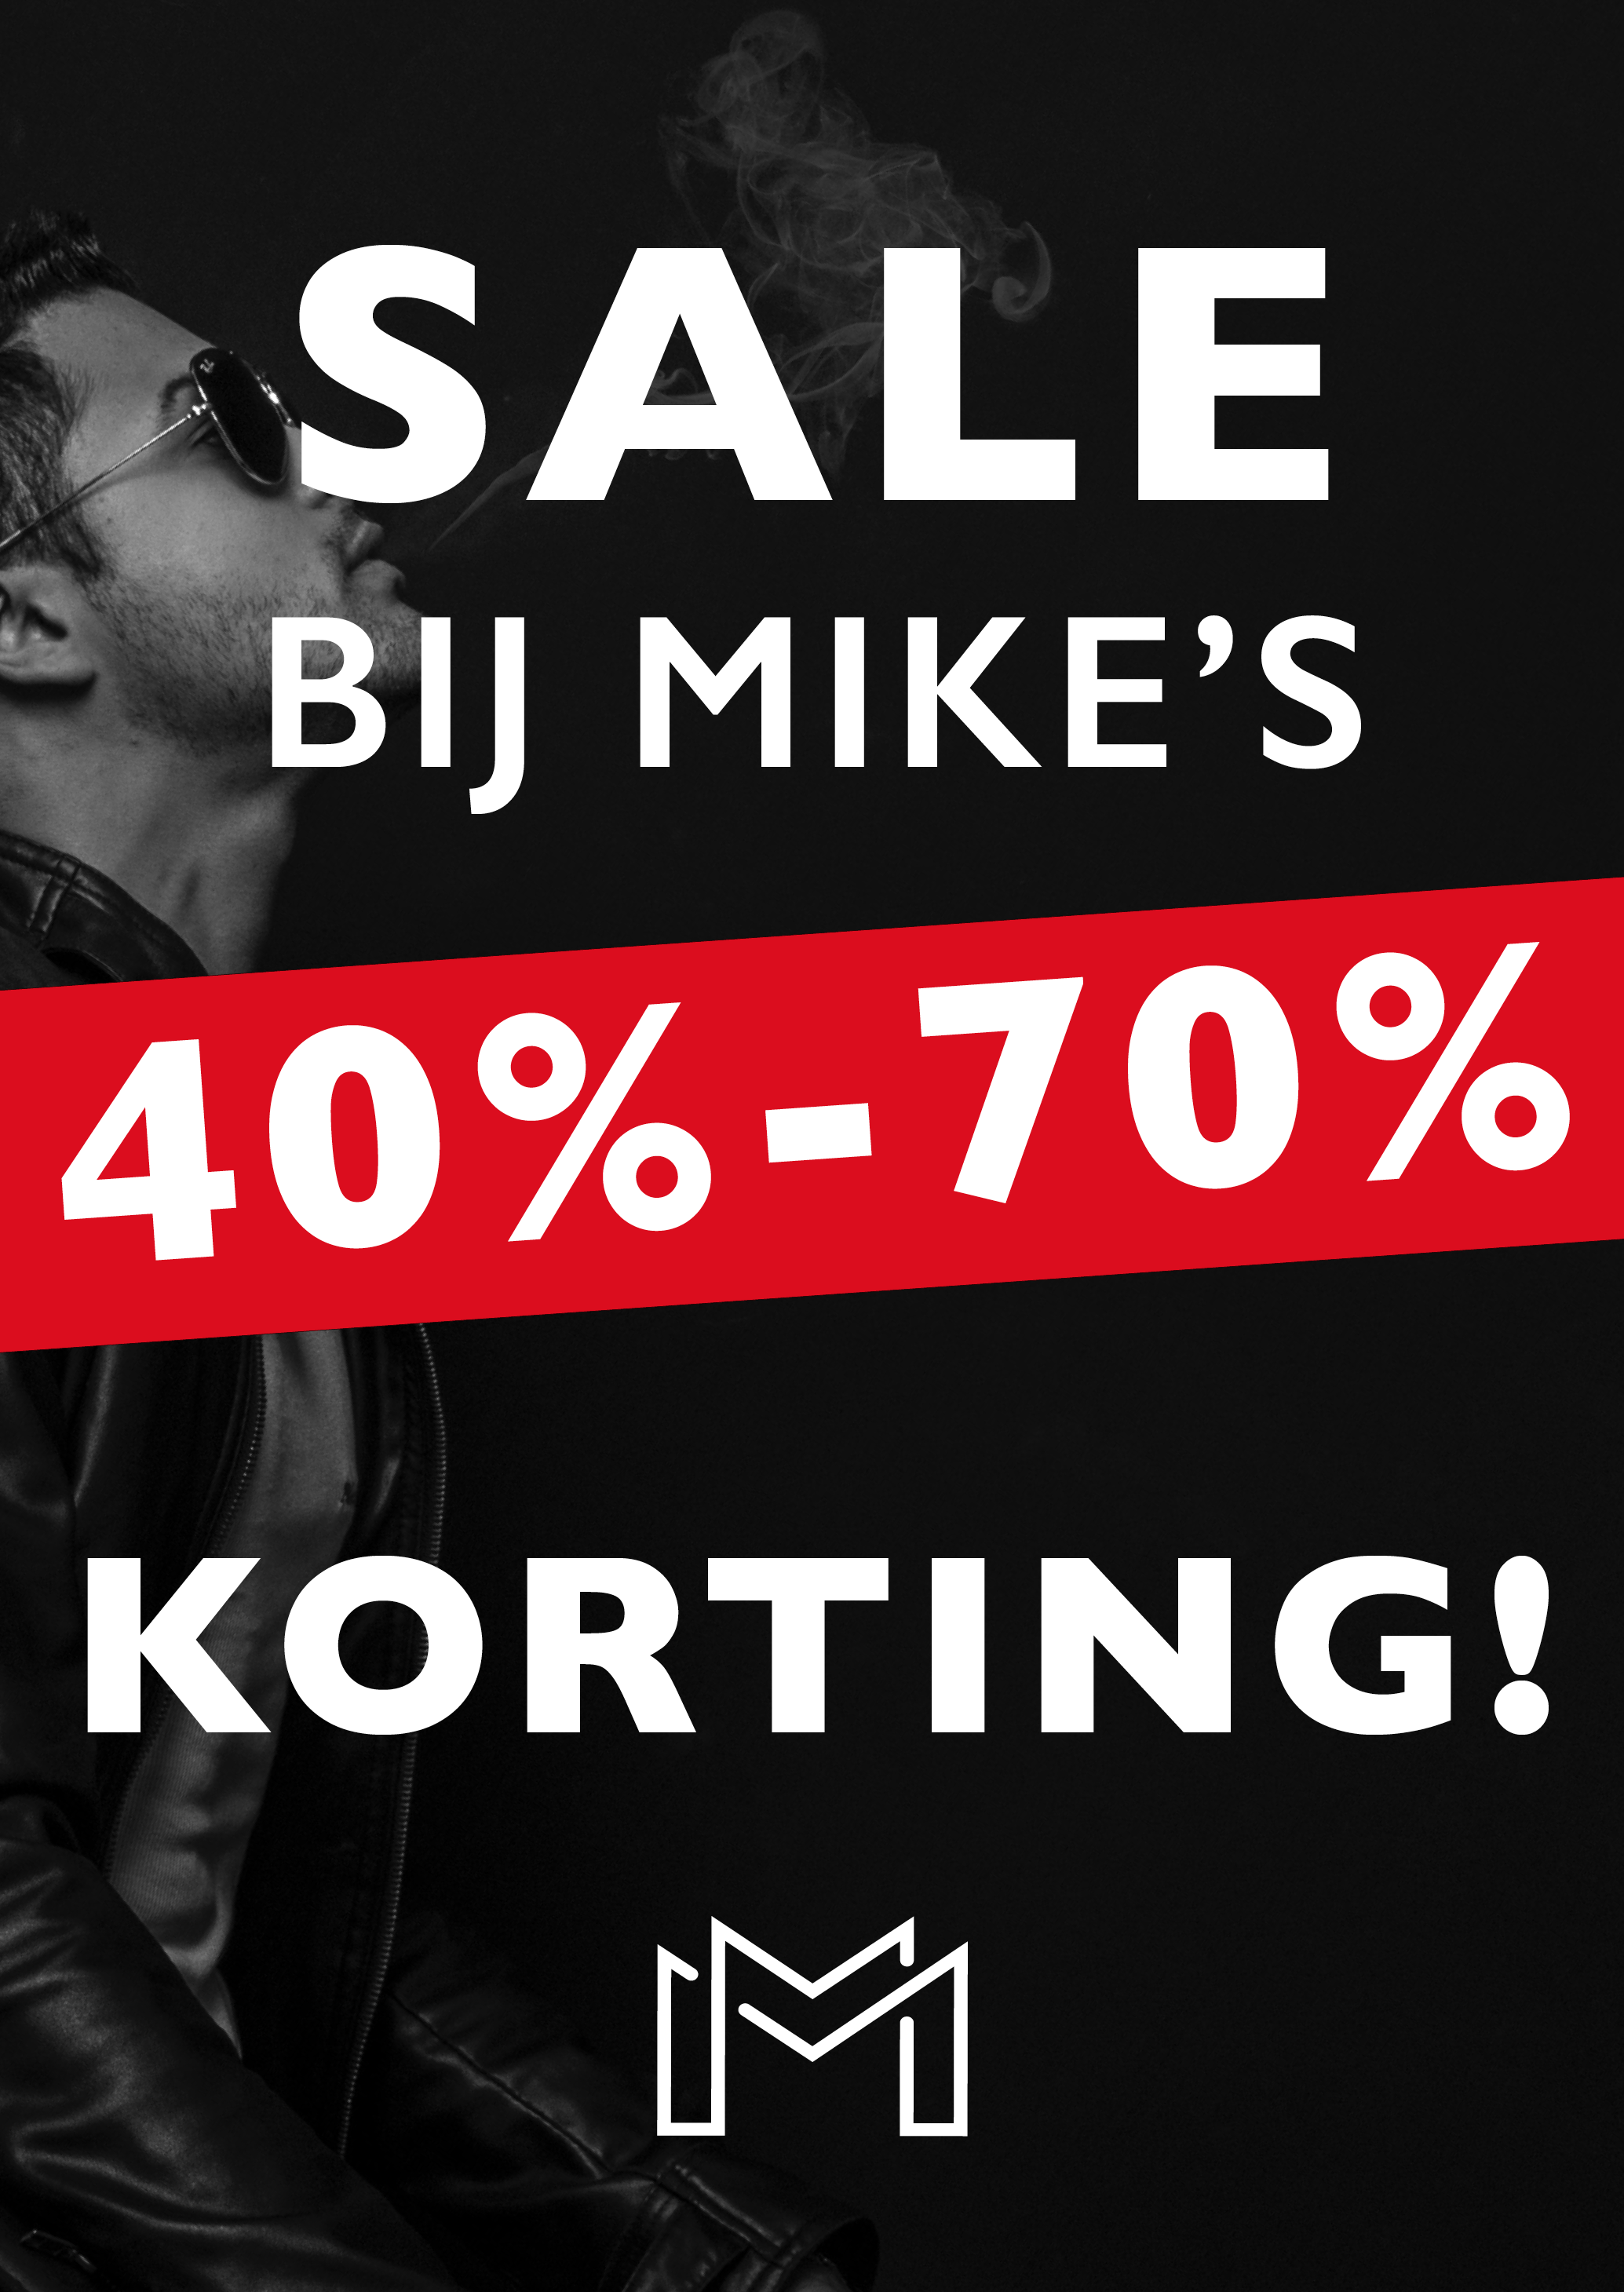 mikes-sale.png